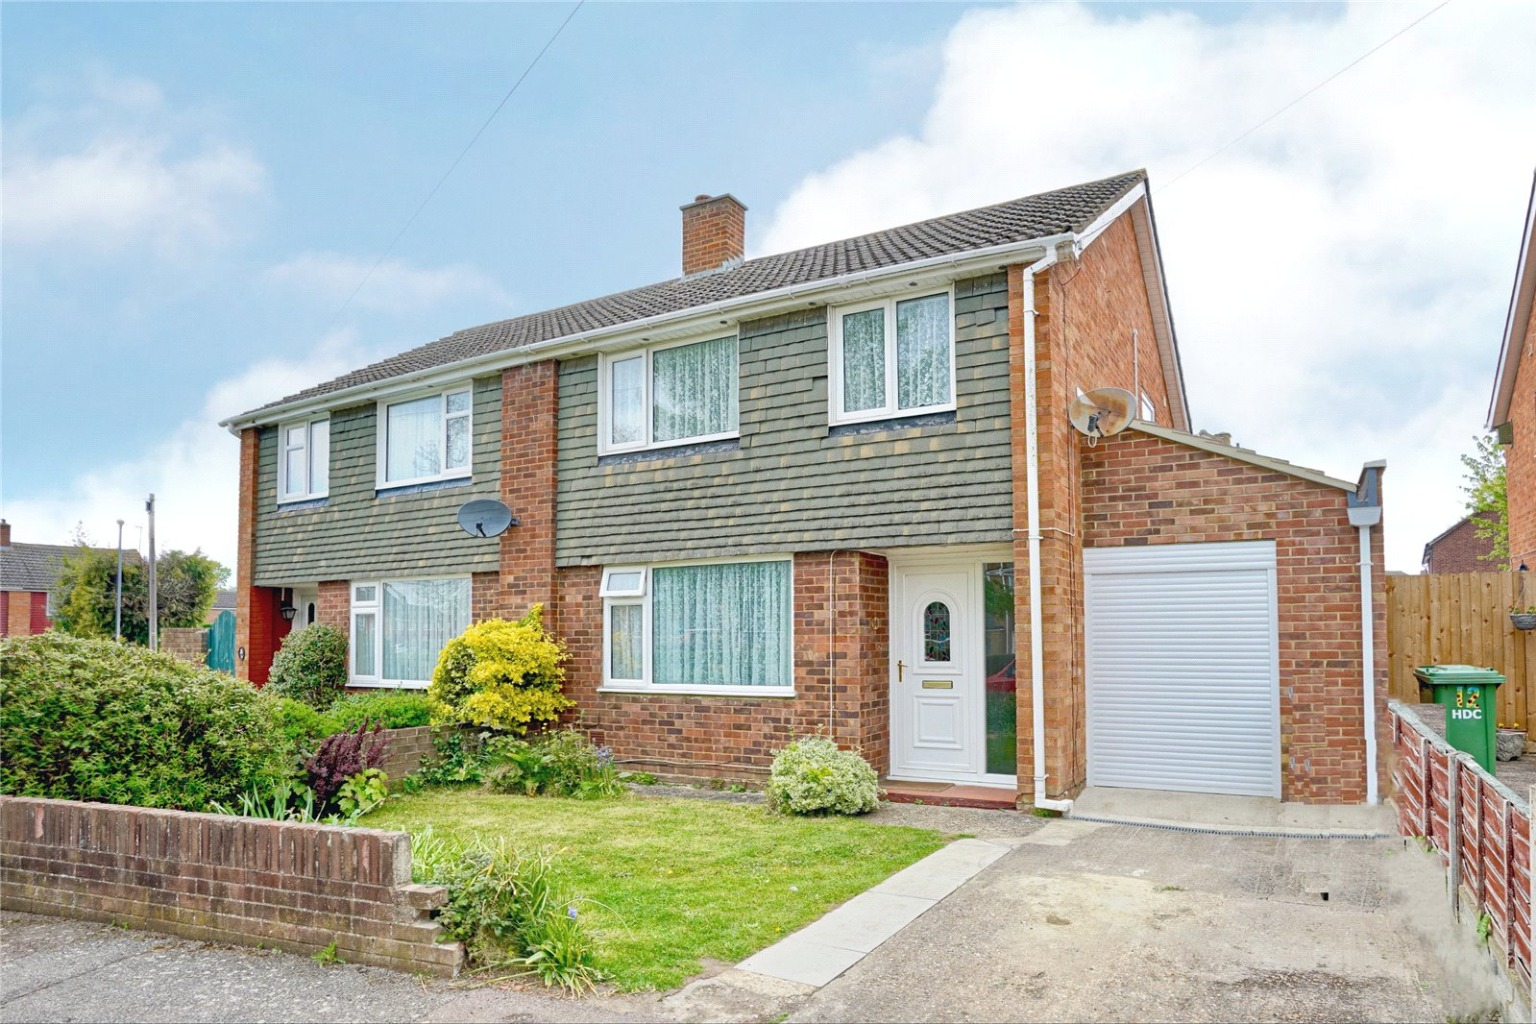 3 bed semi-detached house for sale in Acacia Grove, St. Neots - Property Image 1